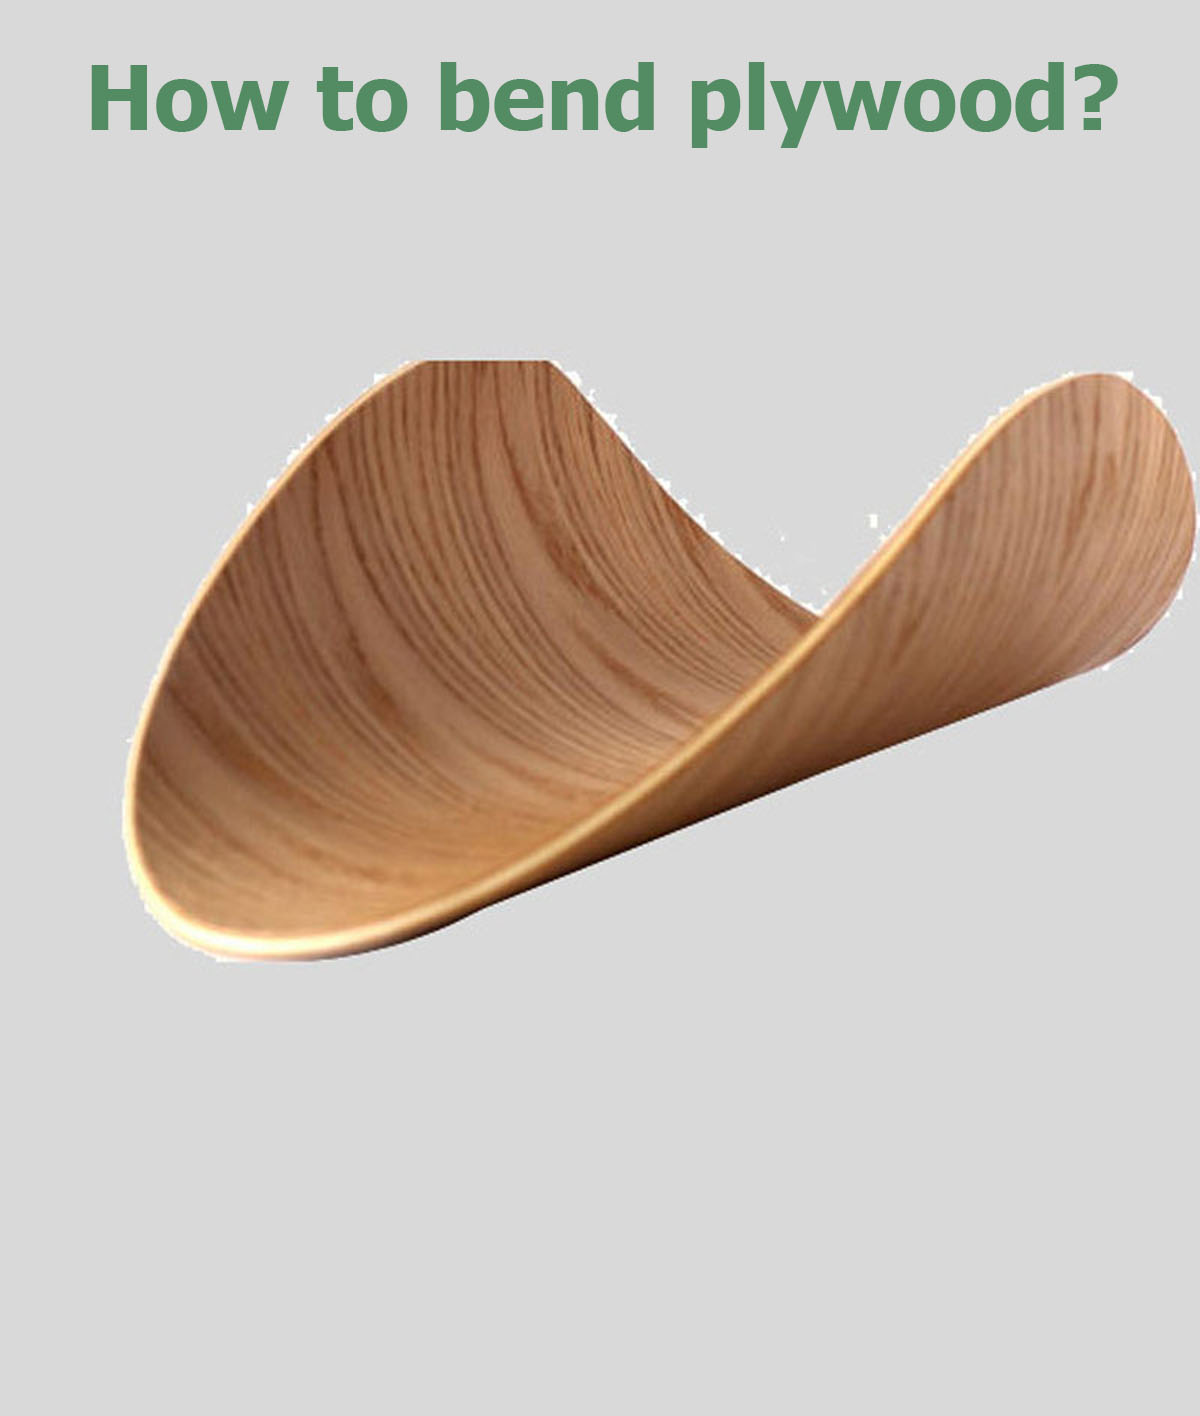 how to bend plywood